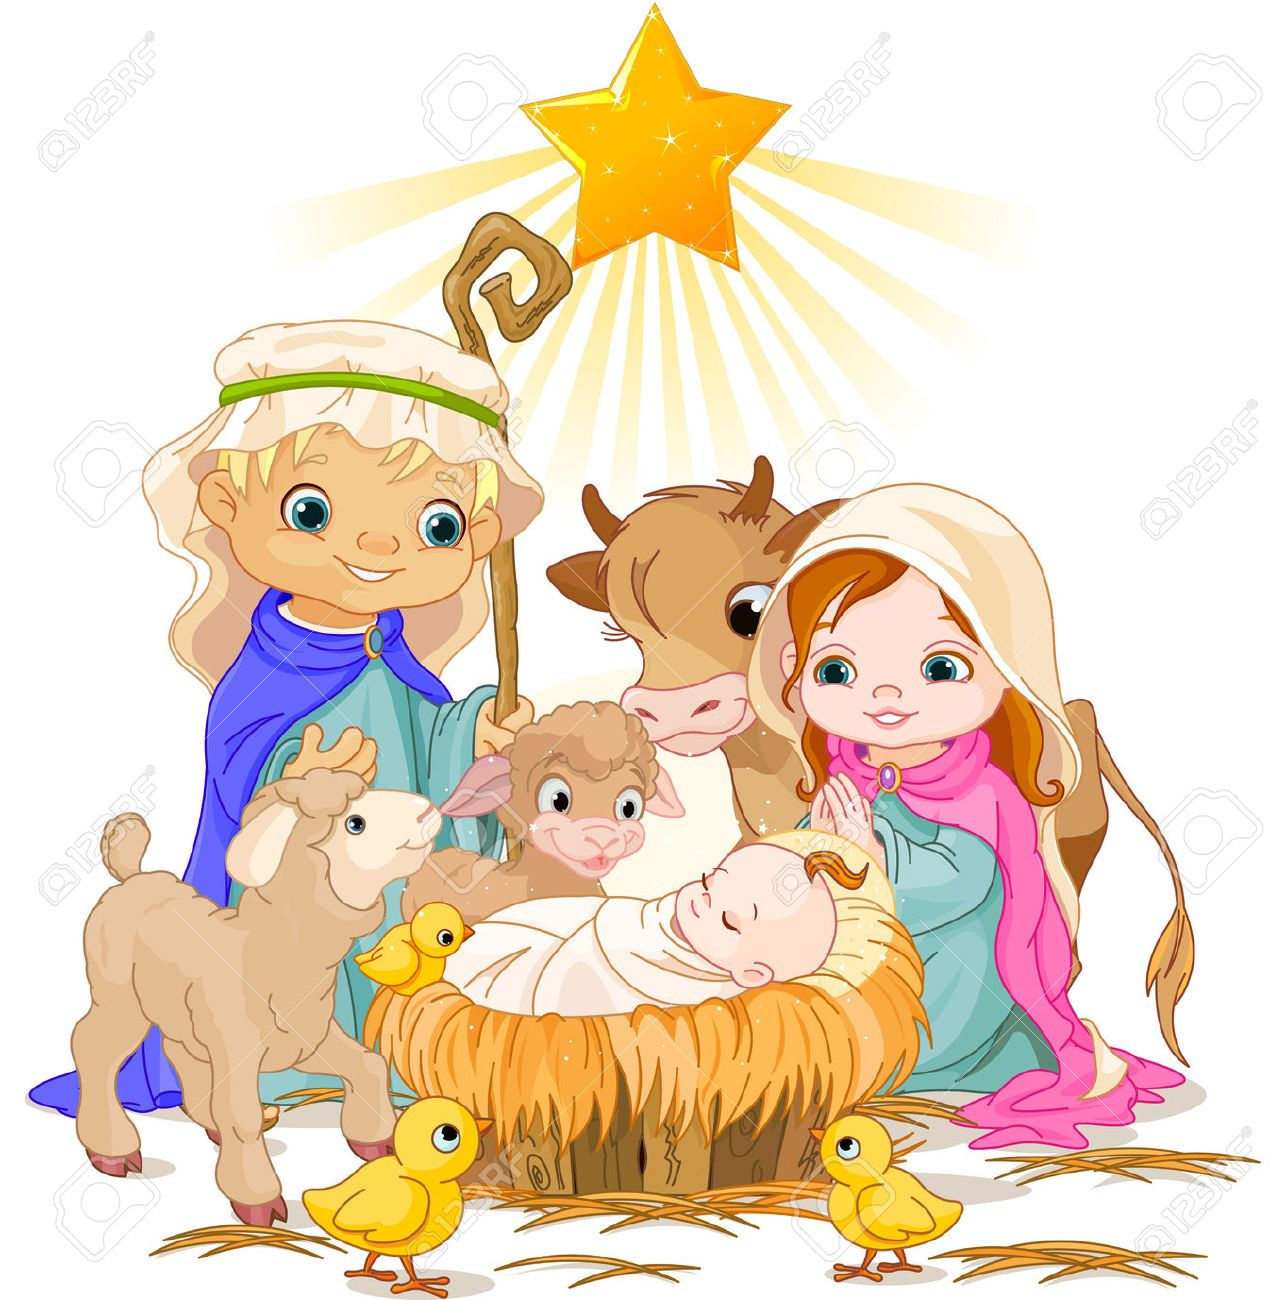 religious christmas clipart images google search [ 1286 x 1300 Pixel ]